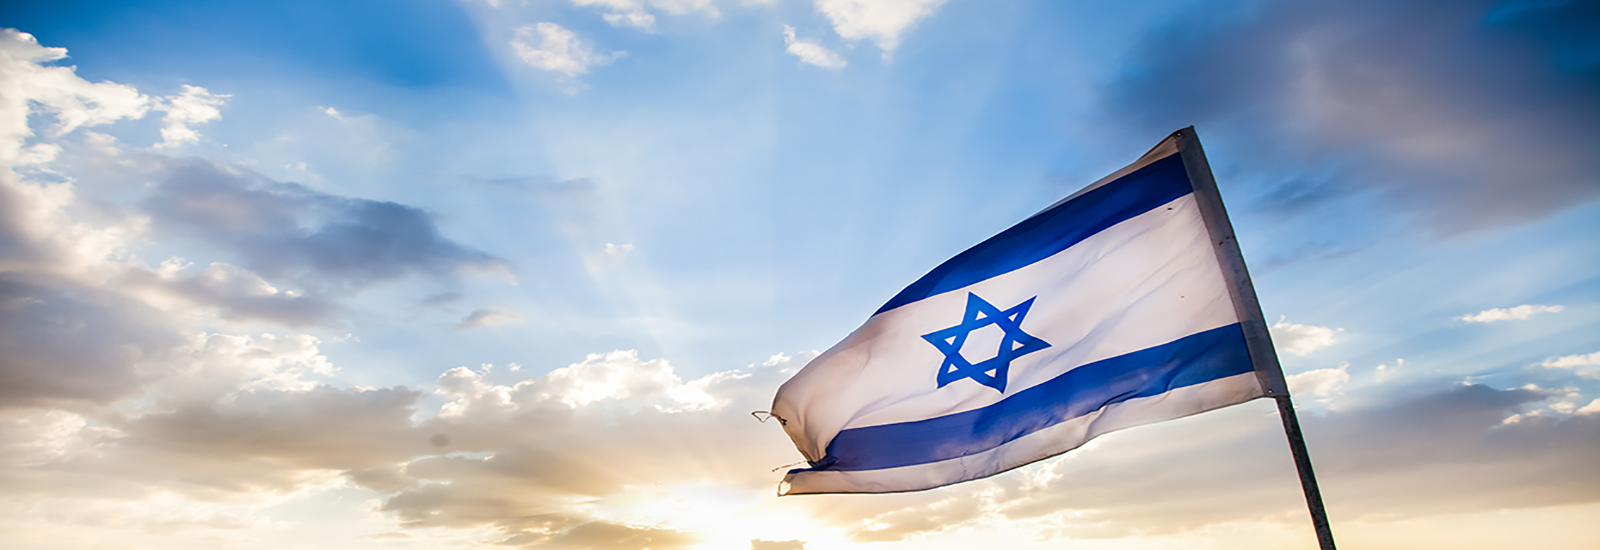 This is a stock photo. The flag of Israel.